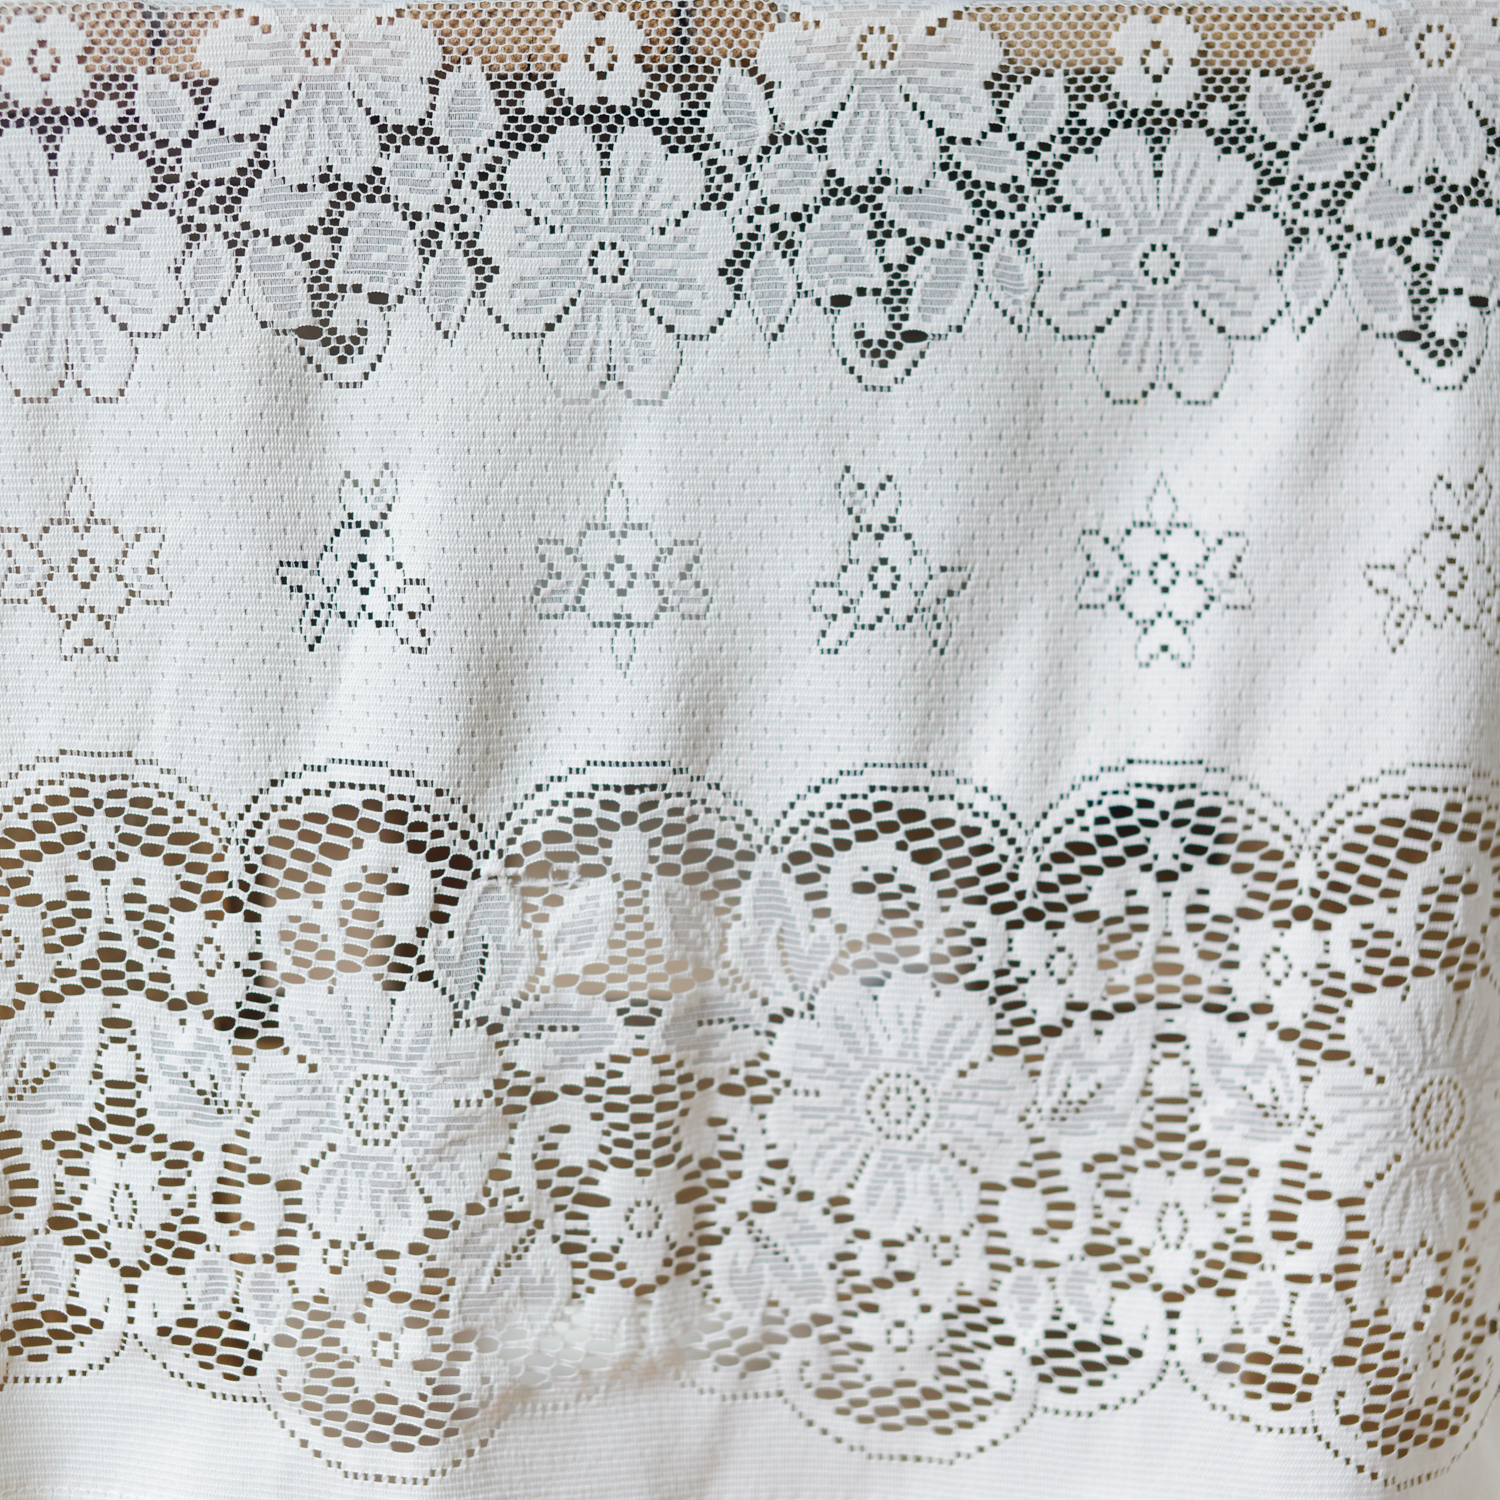 assorted vintage lace tablecloths